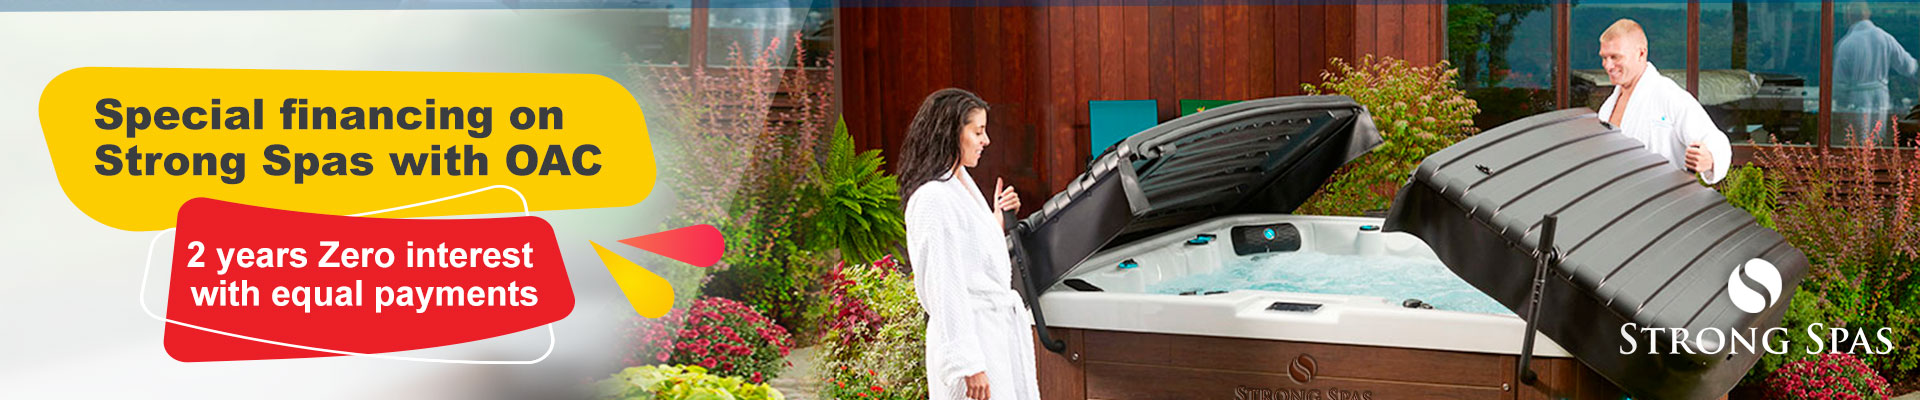 Special financing on  Strong Spas with OAC // 2 years Zero interest  with equal payments